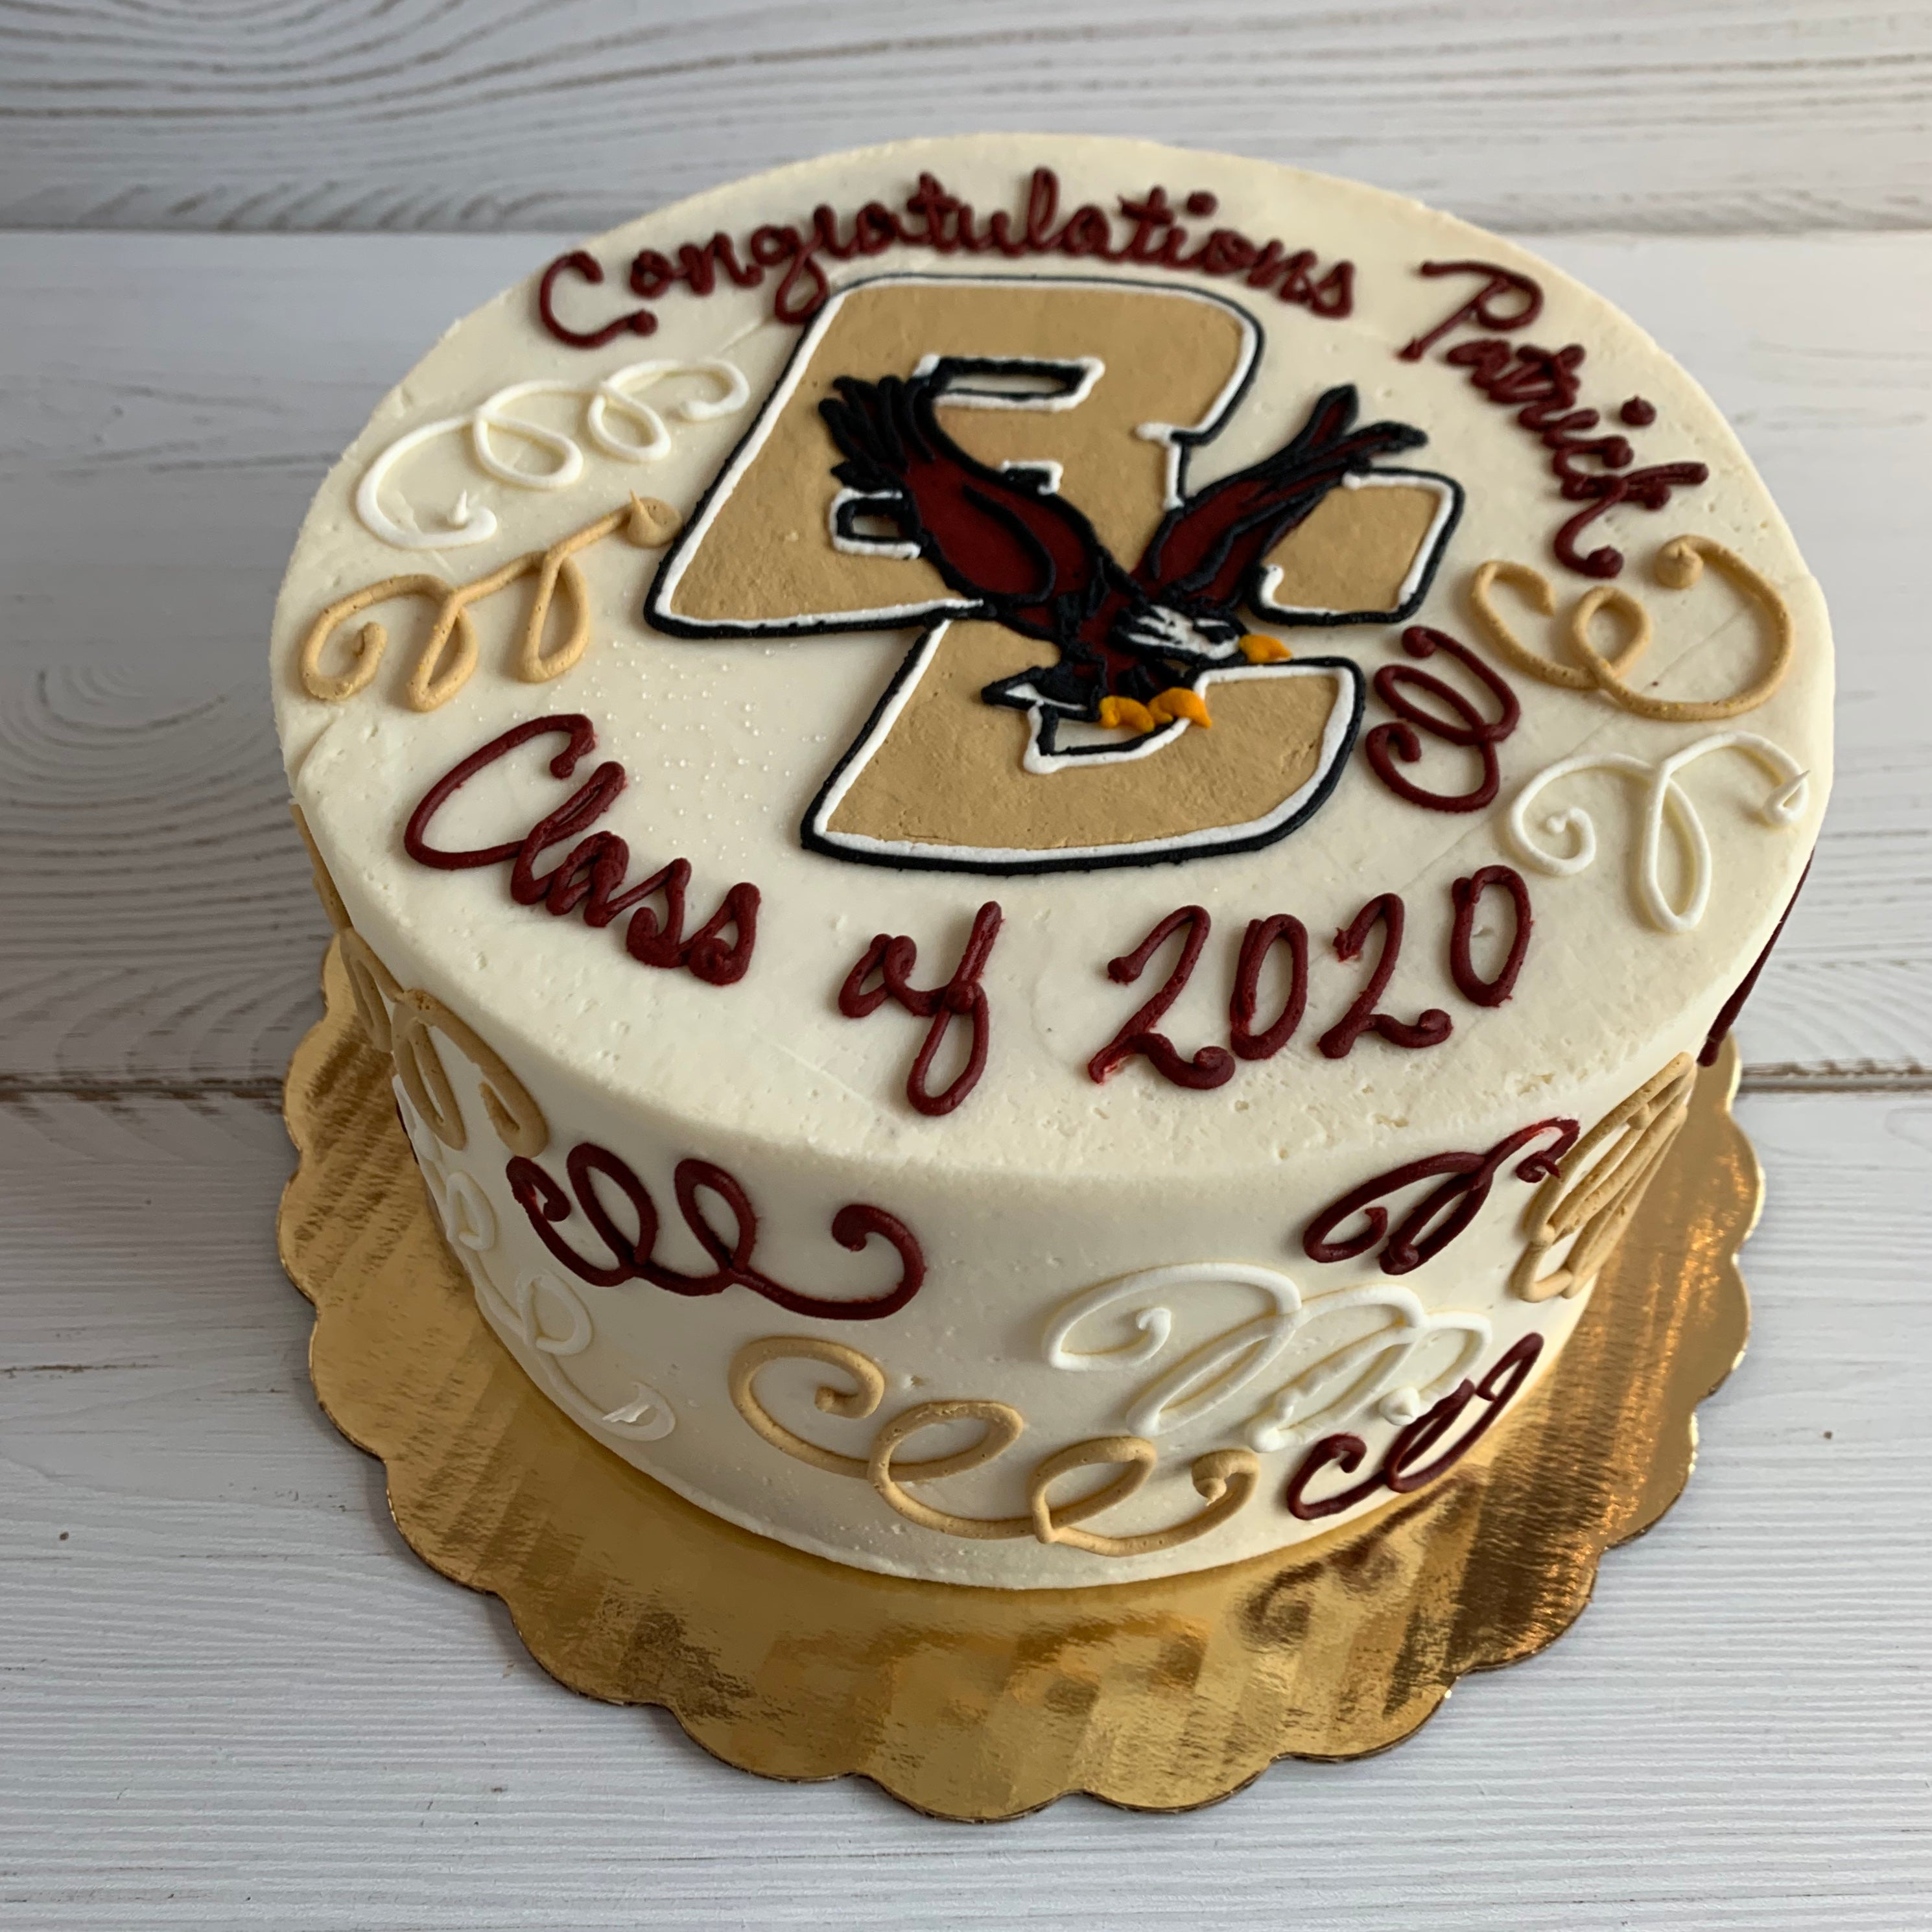 Boston College (BC) Graduation Cake